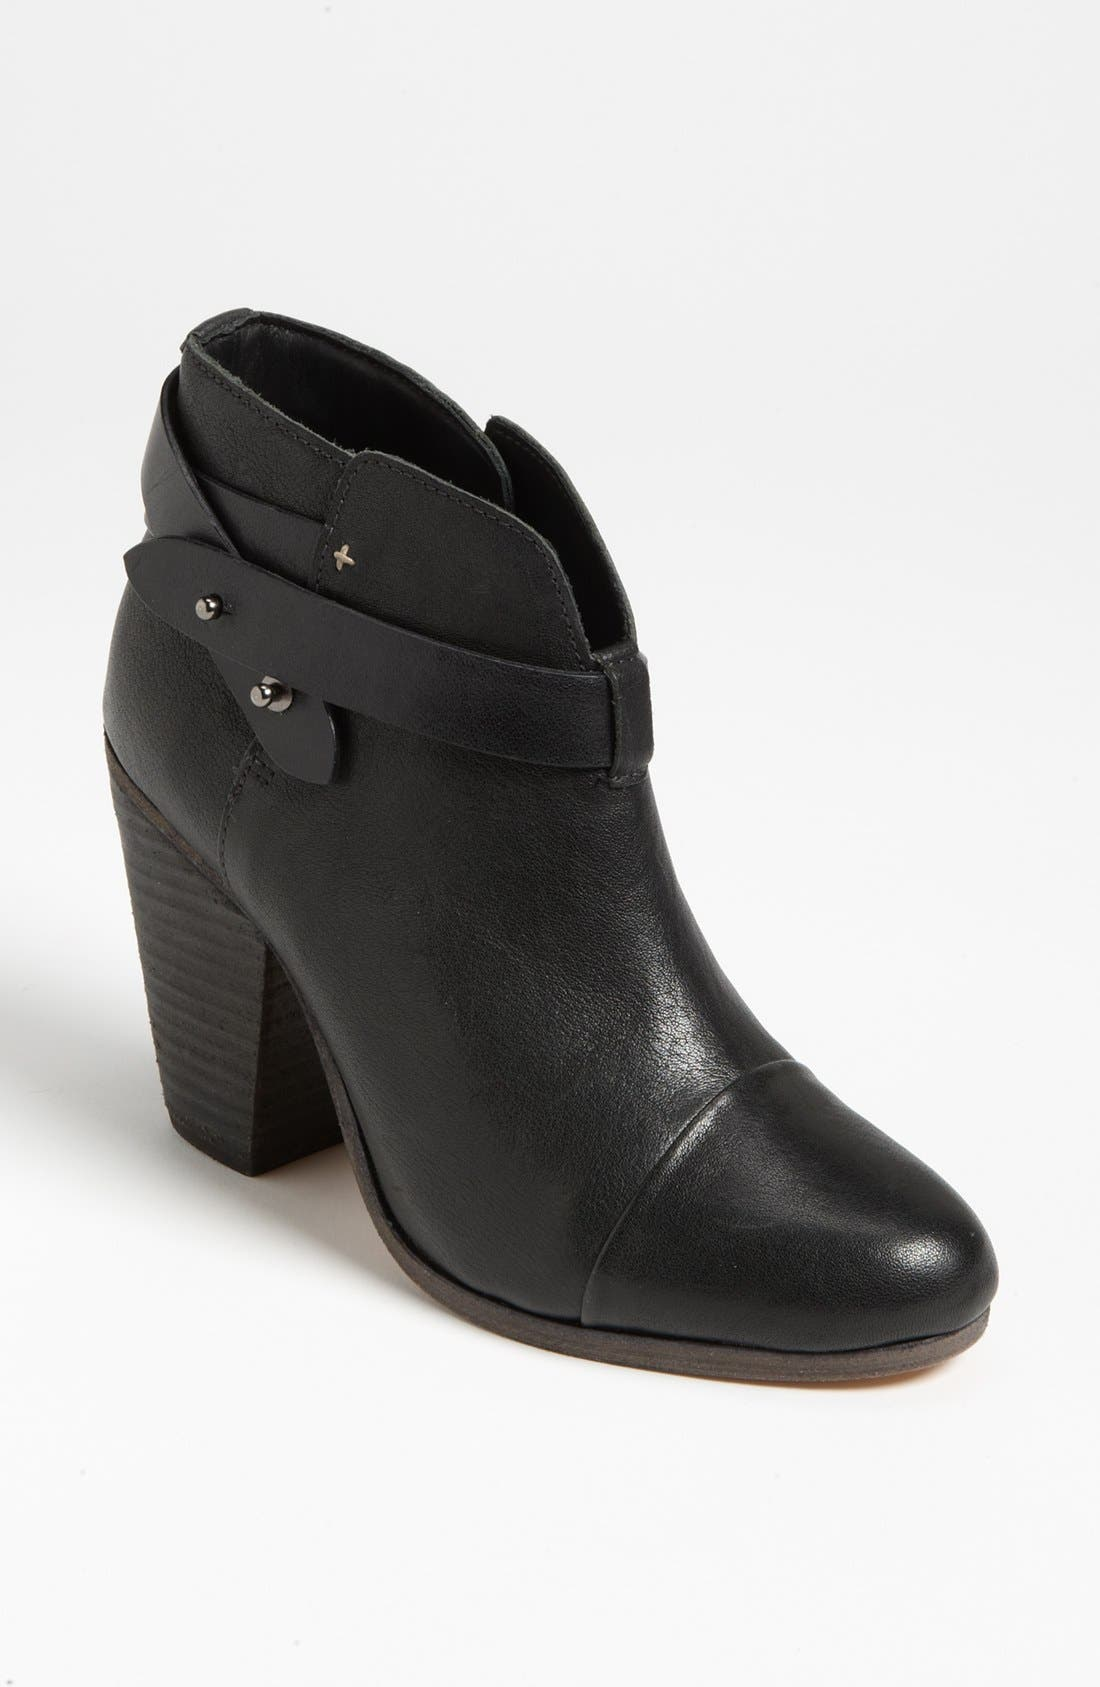 Alternate Image 1 Selected - rag & bone 'Harrow' Leather Boot